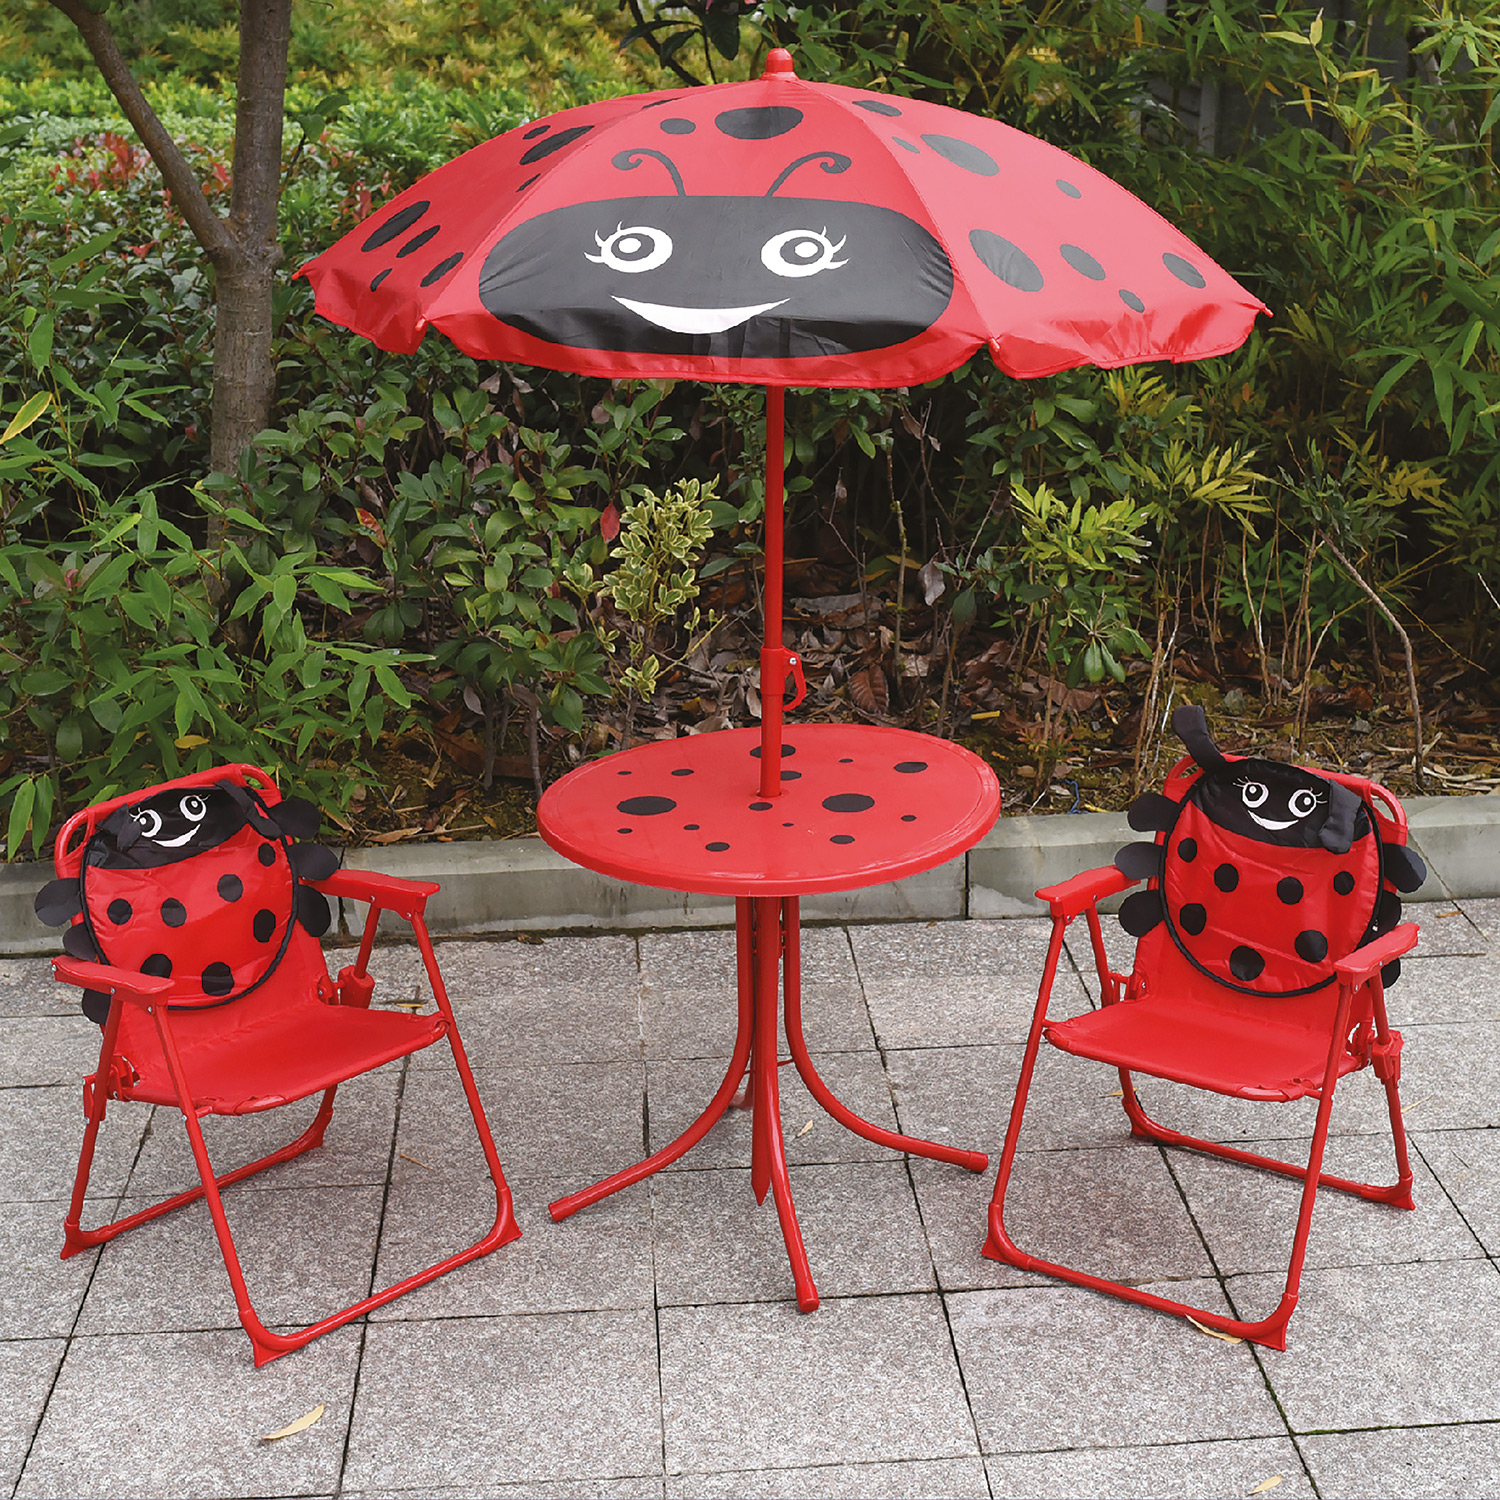 Ladybird Kids Patio Set 4pc. Tap to expand & Ladybird Kids Patio Set 4pc - Home Store + More